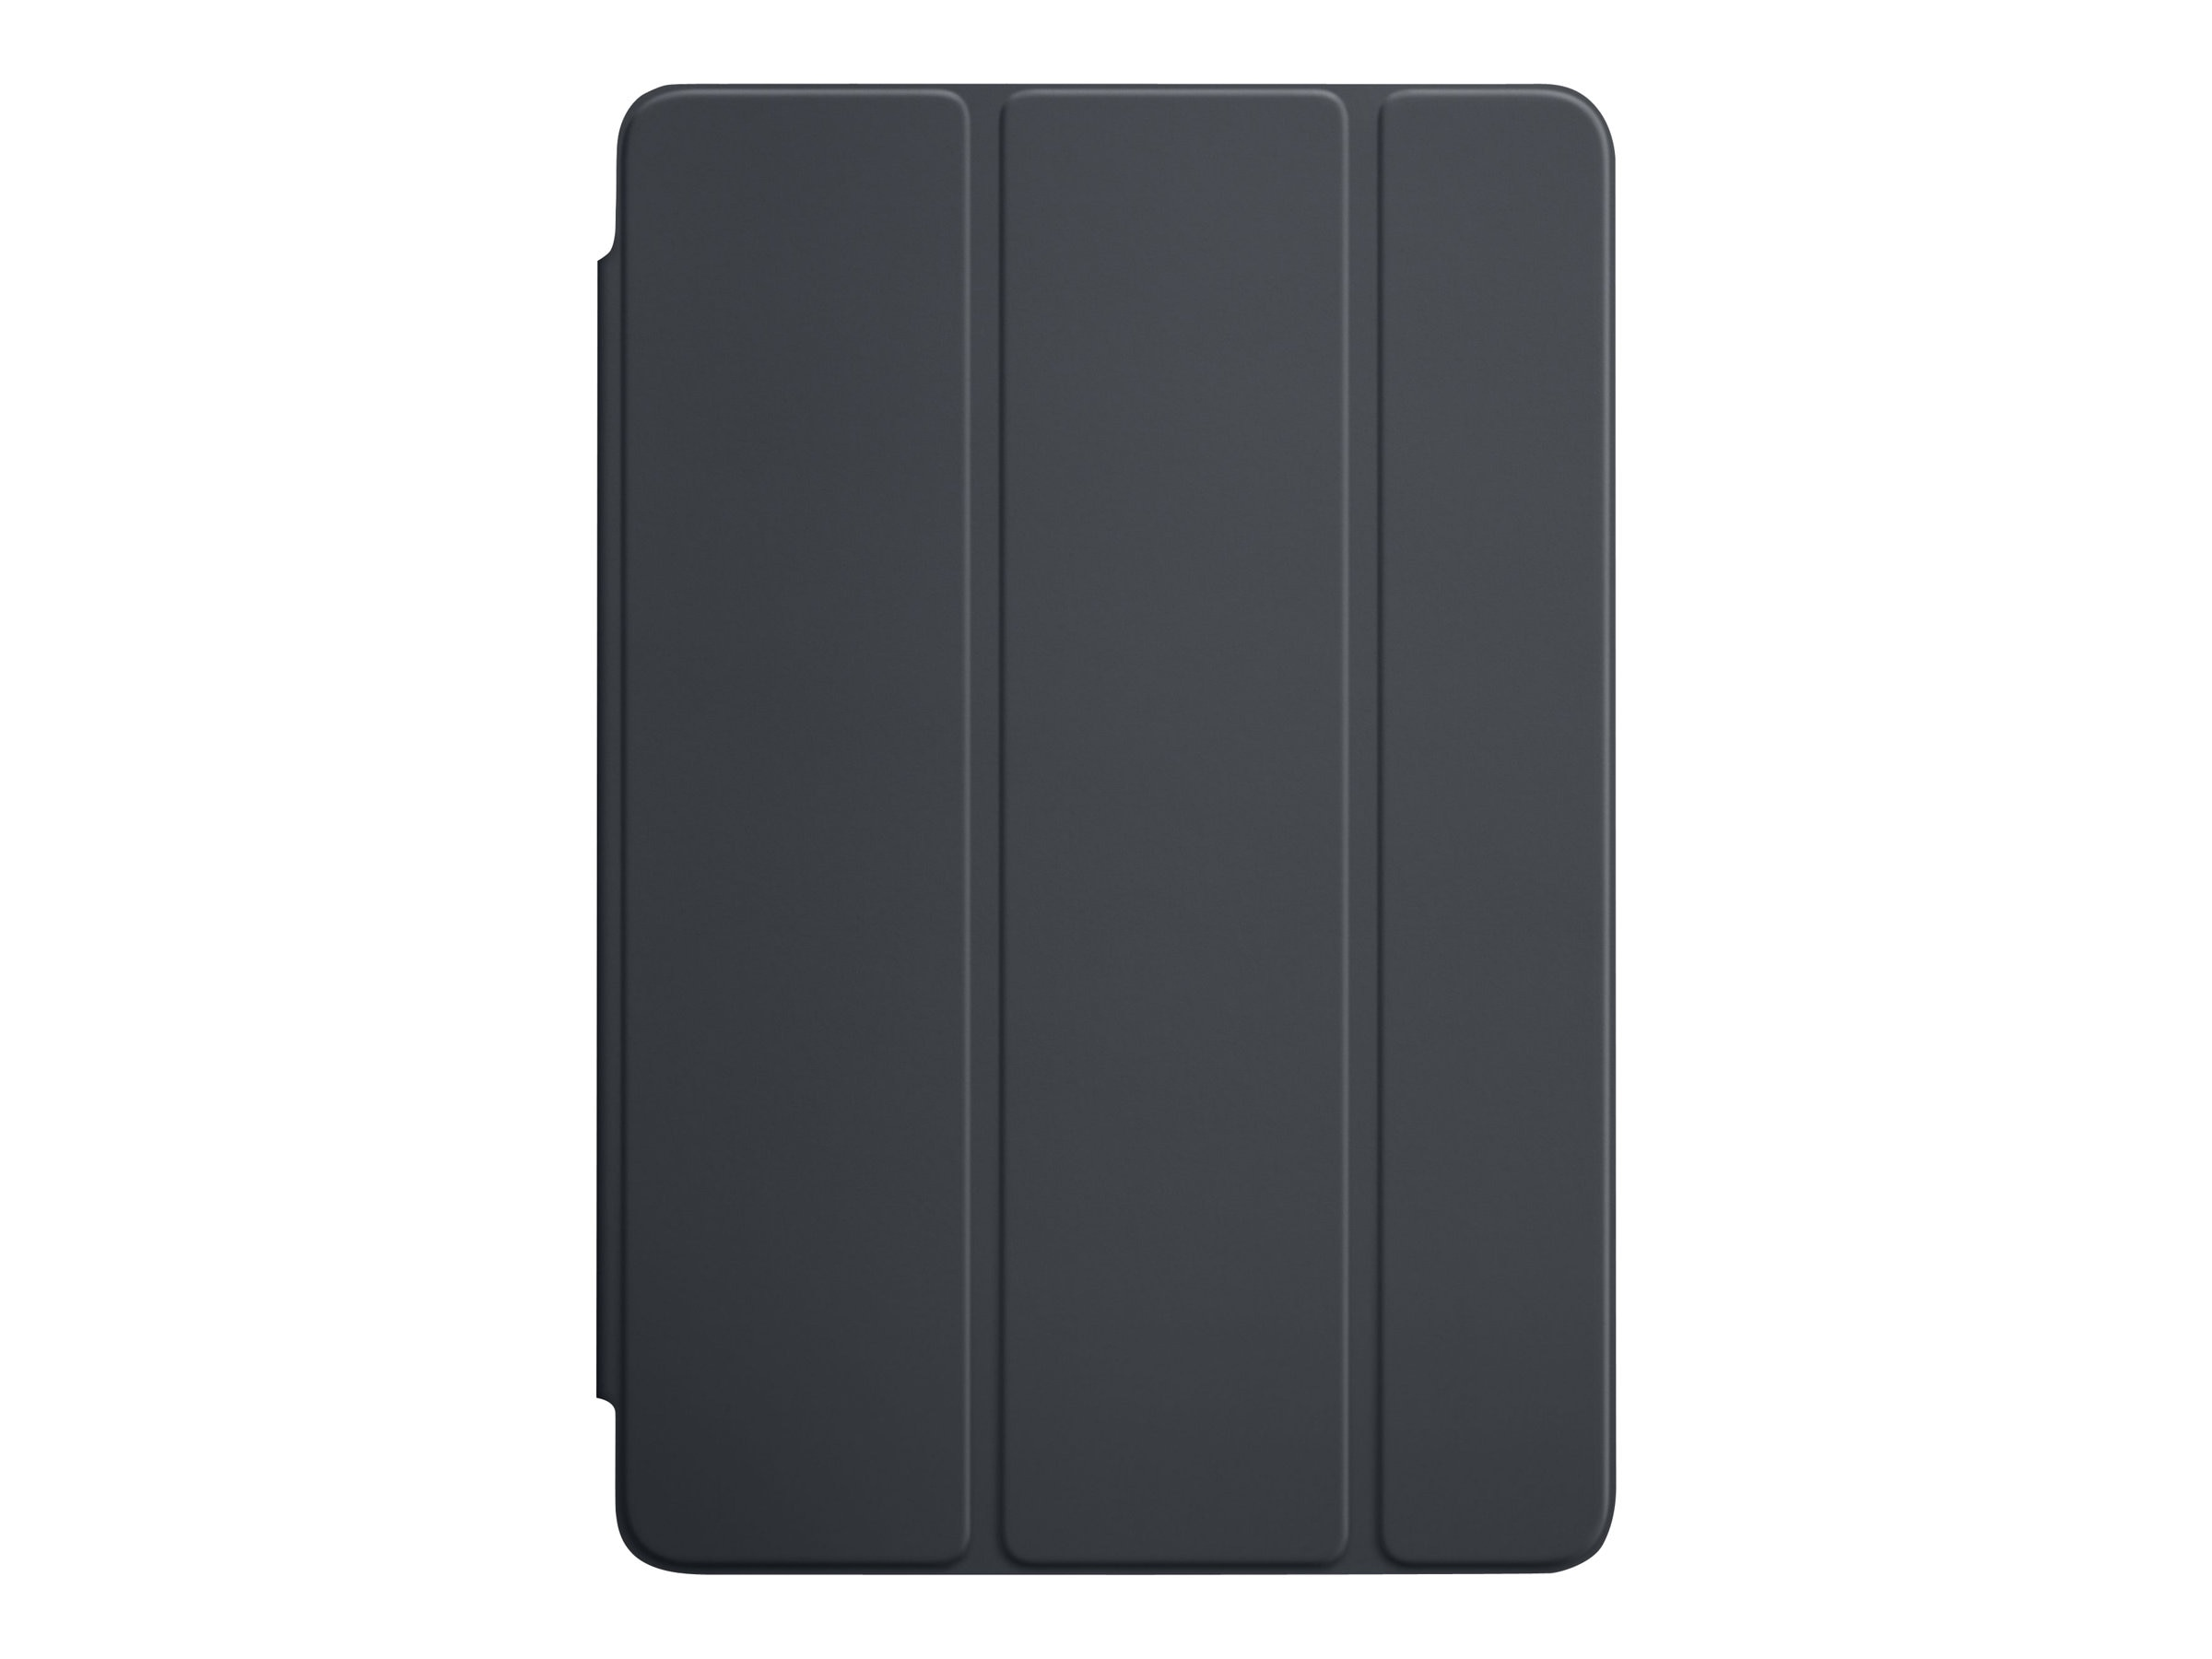 Apple iPad mini 4 Smart Cover, Charcoal Gray, MKLV2ZM/A, 30608607, Carrying Cases - Tablets & eReaders